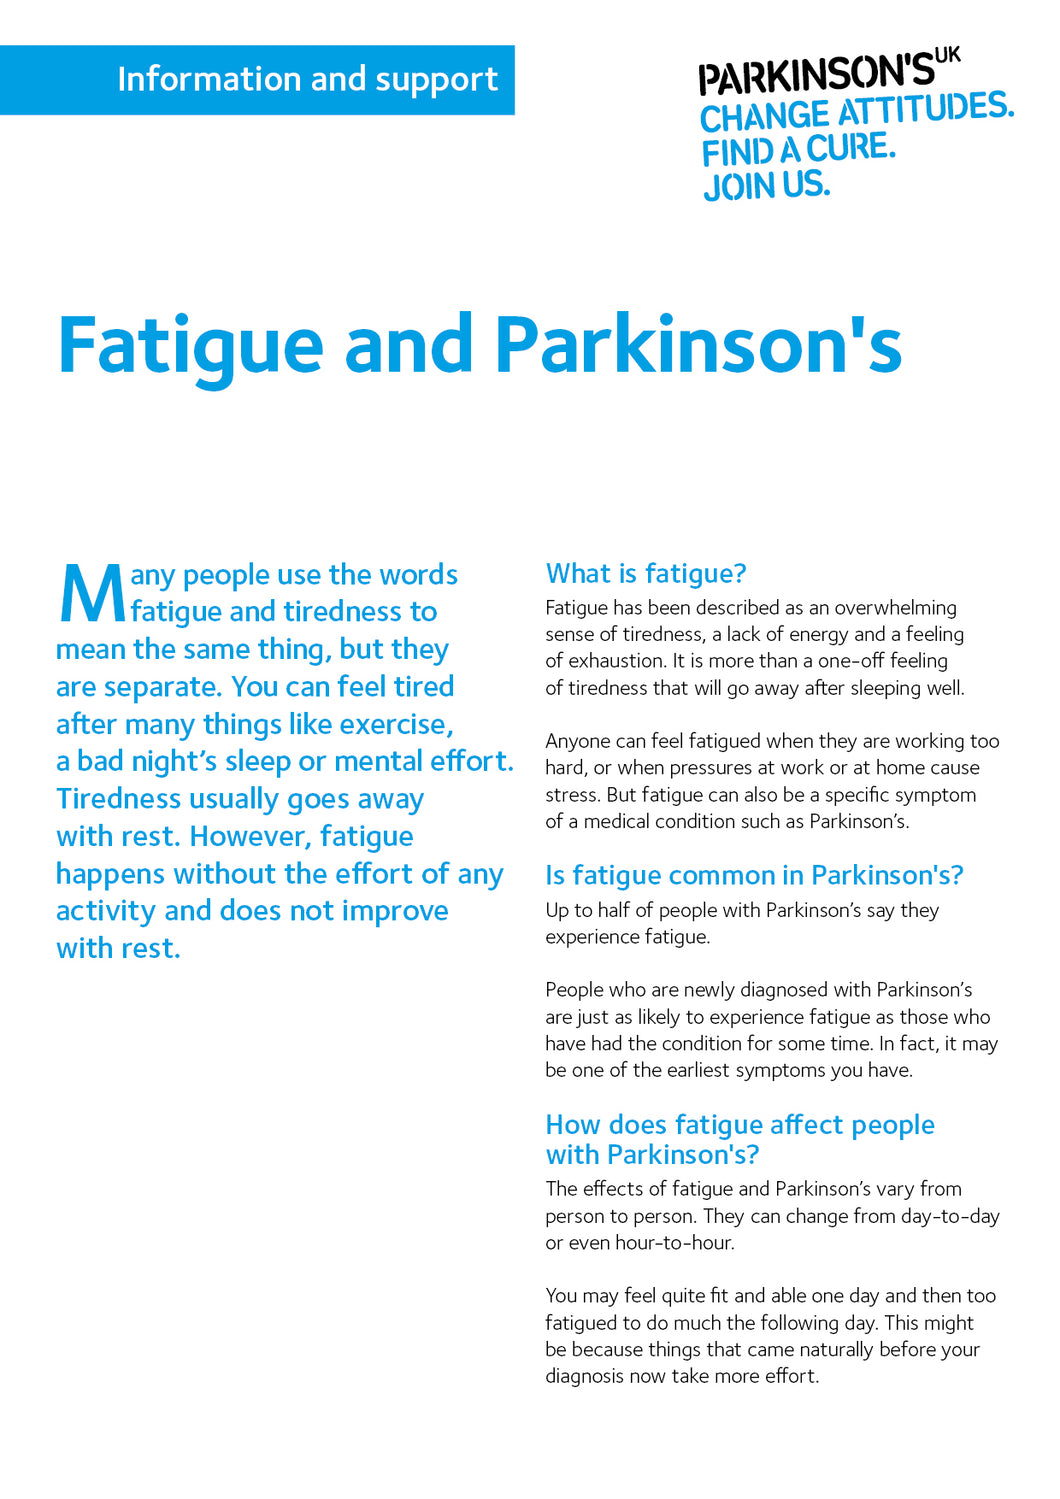 Fatigue and Parkinson's - Parkinson's shop